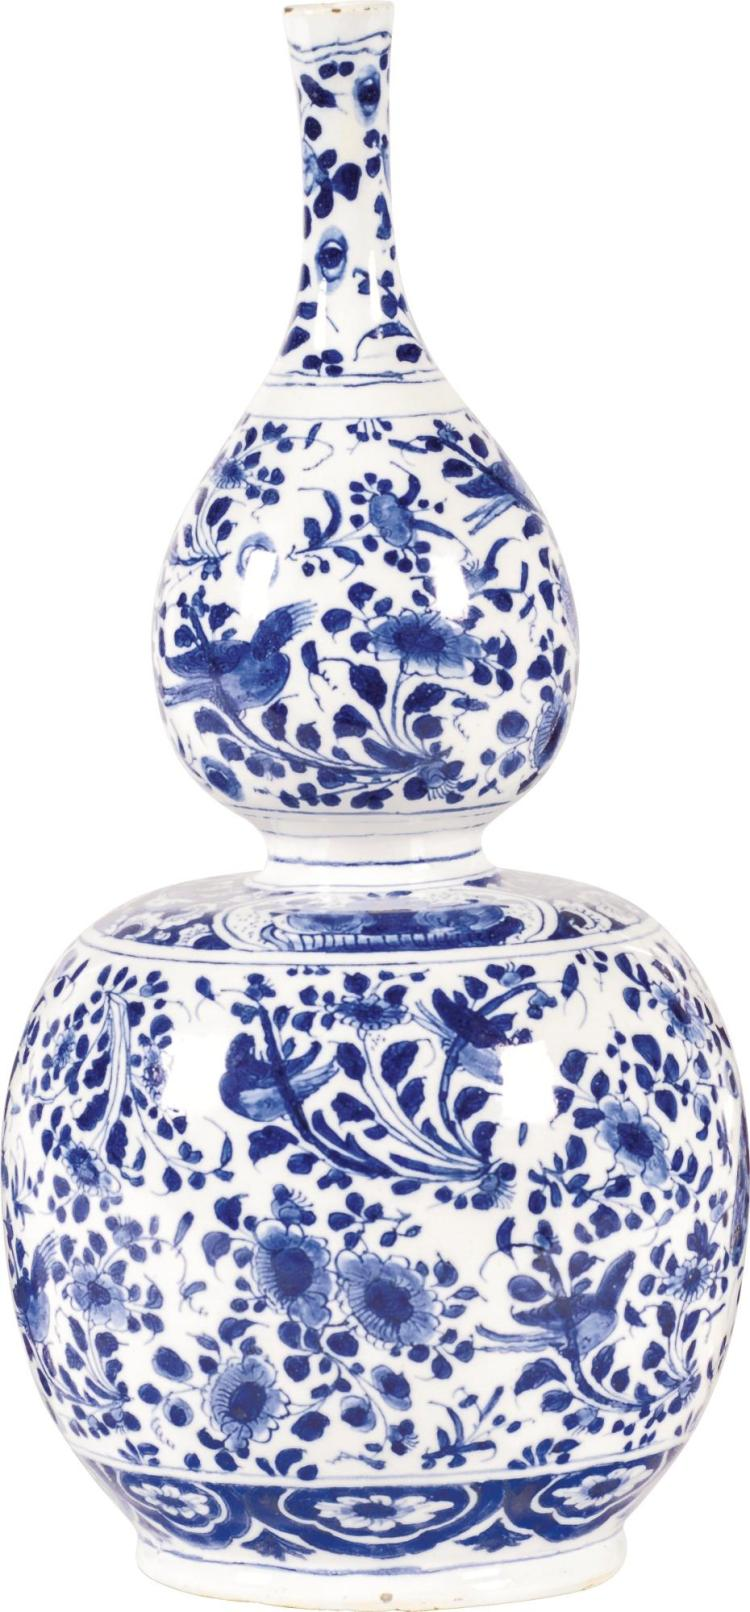 A DUTCHDELFT BLUE AND WHITE DOUBLE GOURD VASE, 1685-1700 |